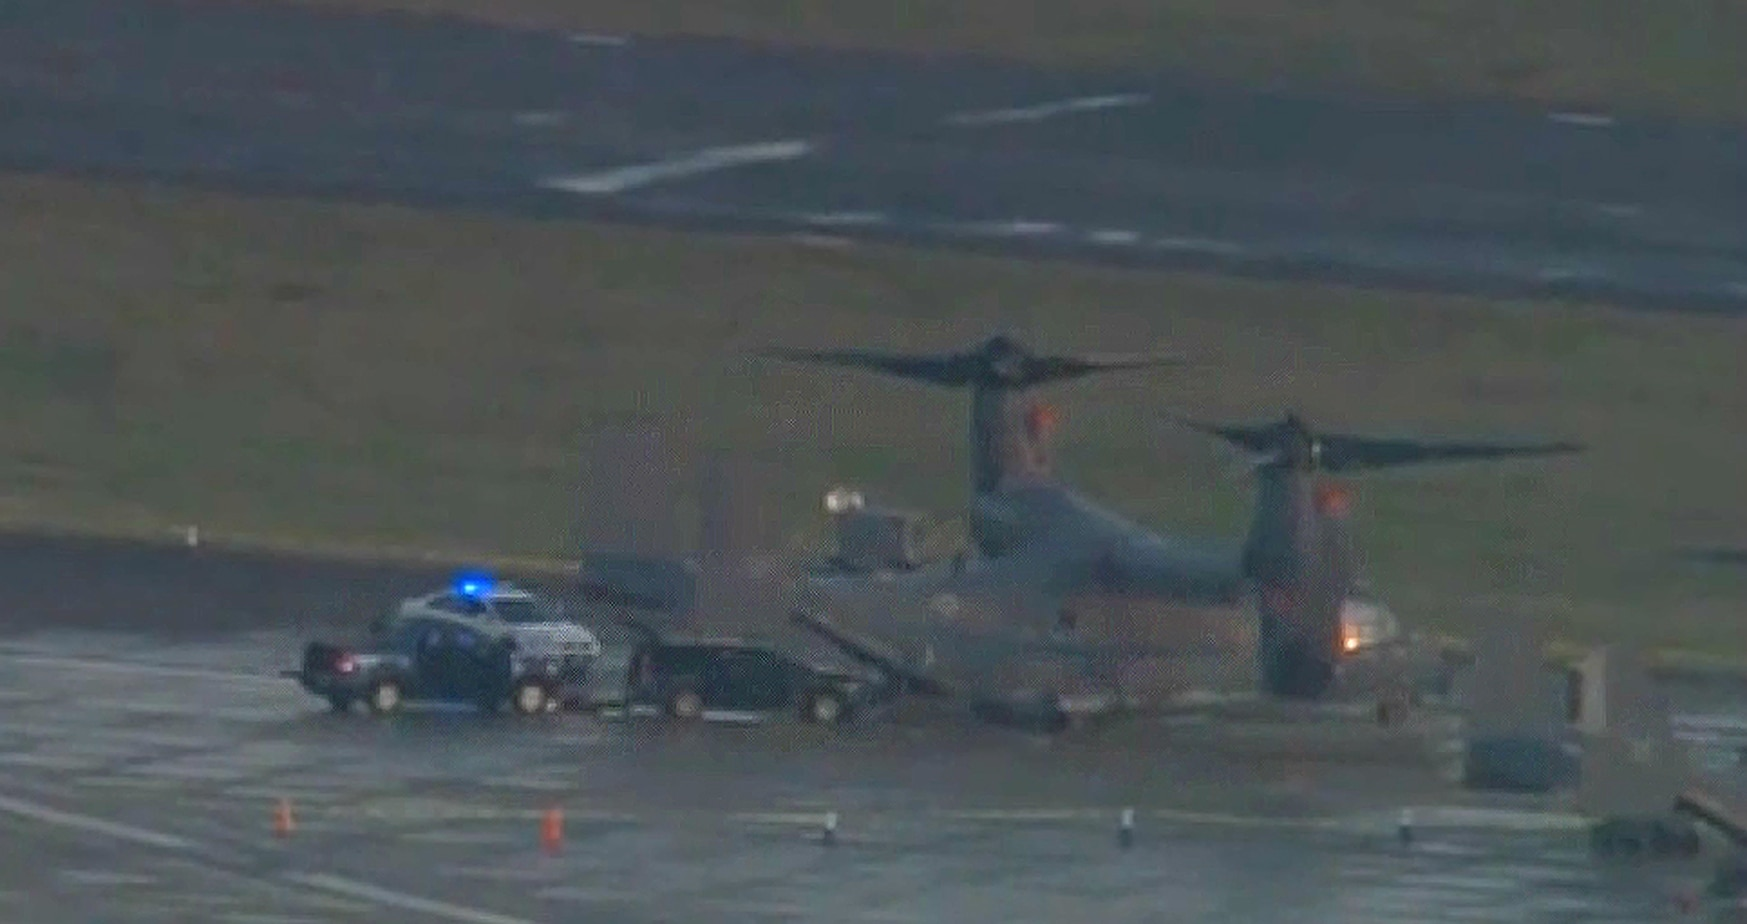 Aerial footage aired by the BBC showed a vehicle behind an Osprey on the flightline at RAF Mildenhall in England, surrounded by police. (Screenshot via BBC)